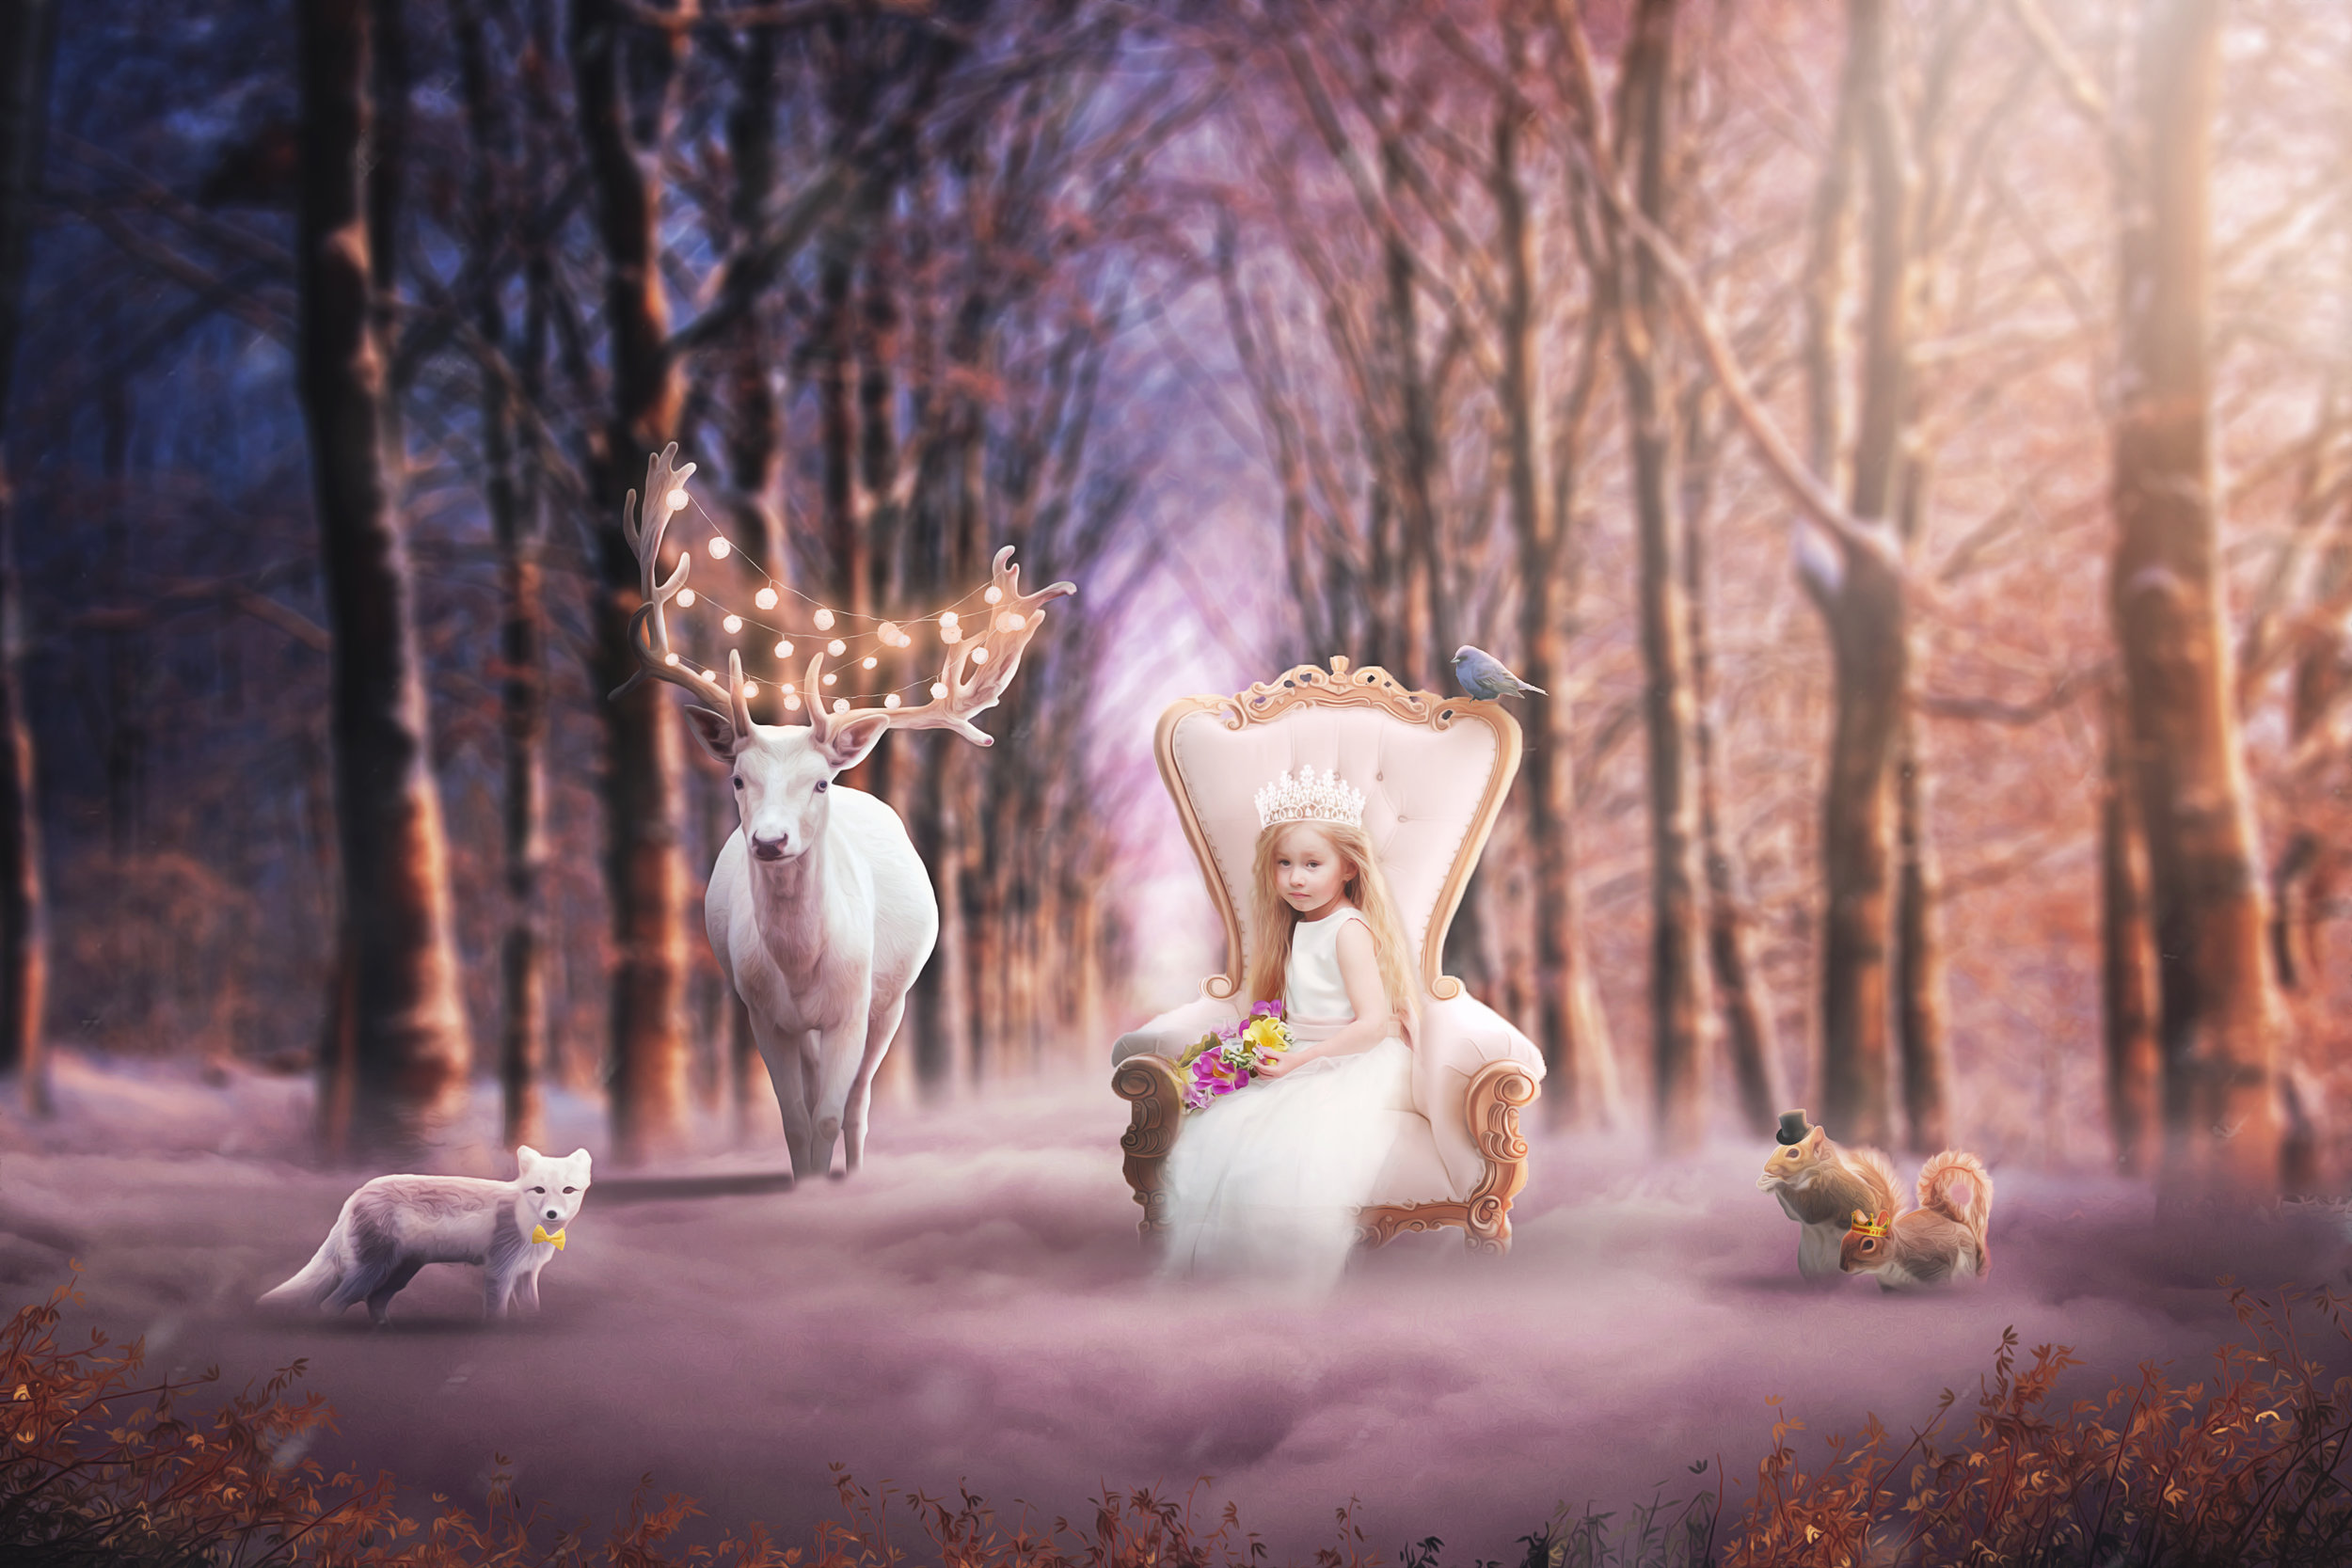 A forest queen and her loyal friends.